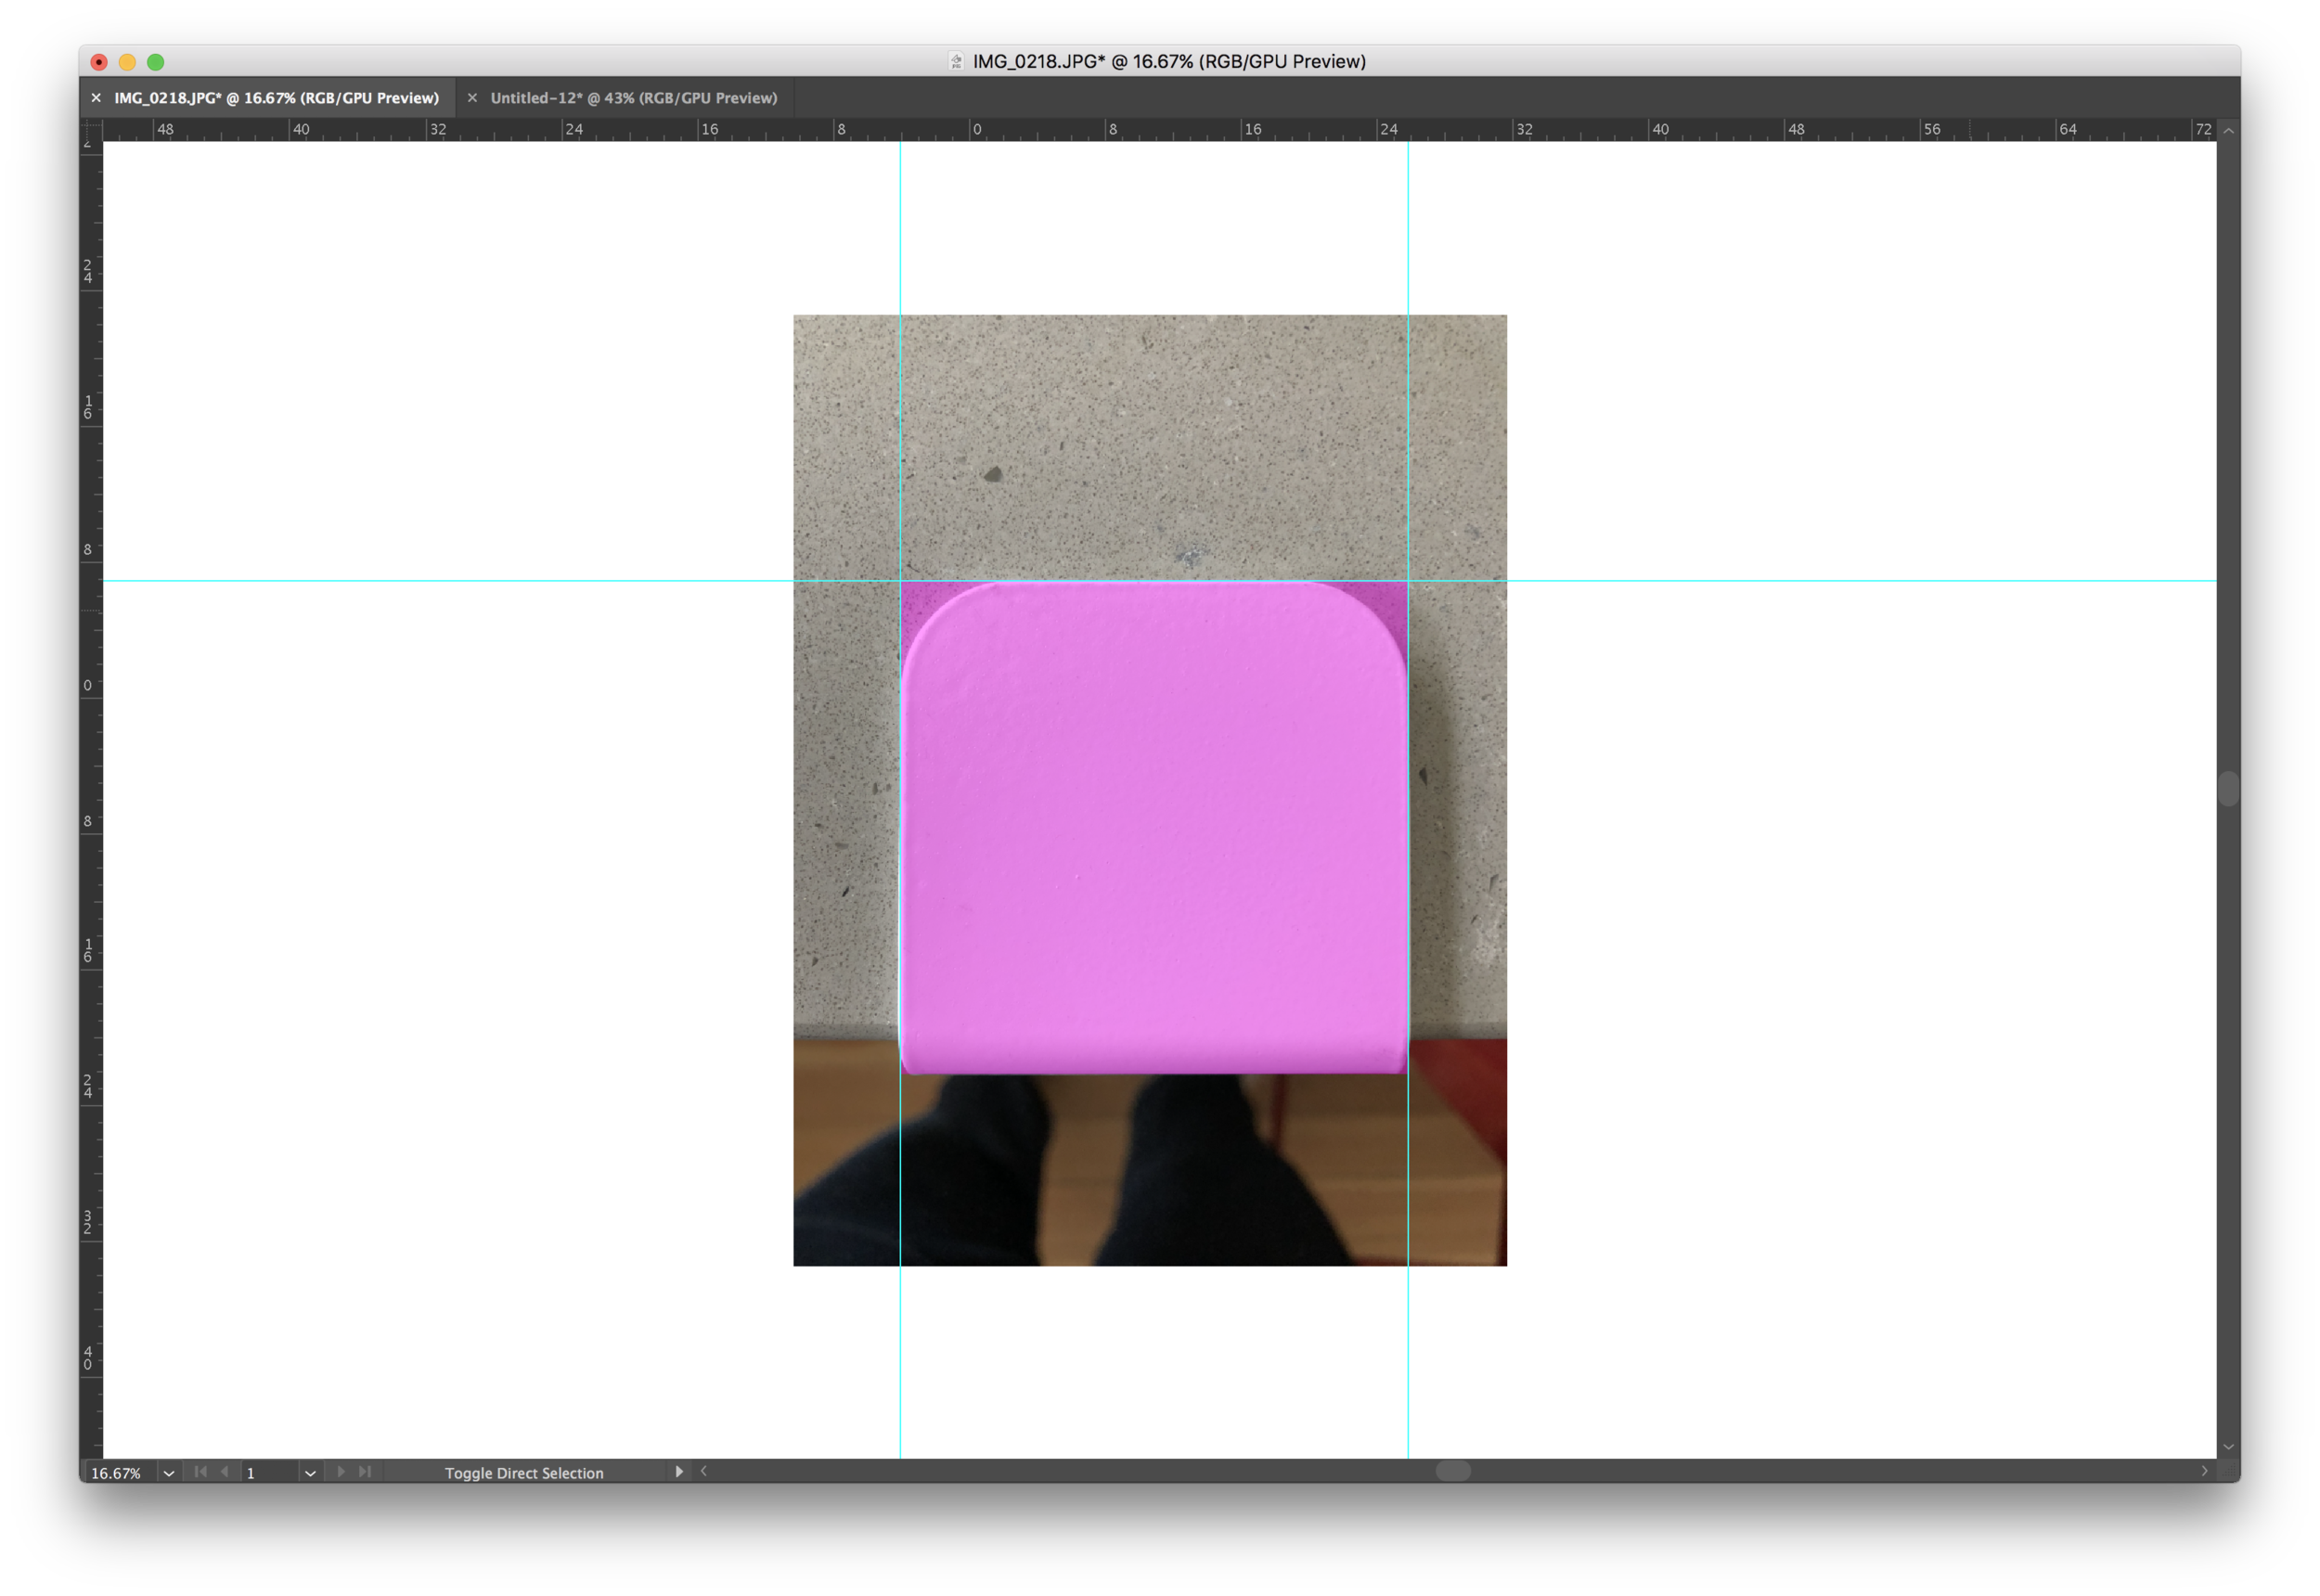 Once we made sure the image was straight and paralell, we dropped a transparent pink box over the leg.